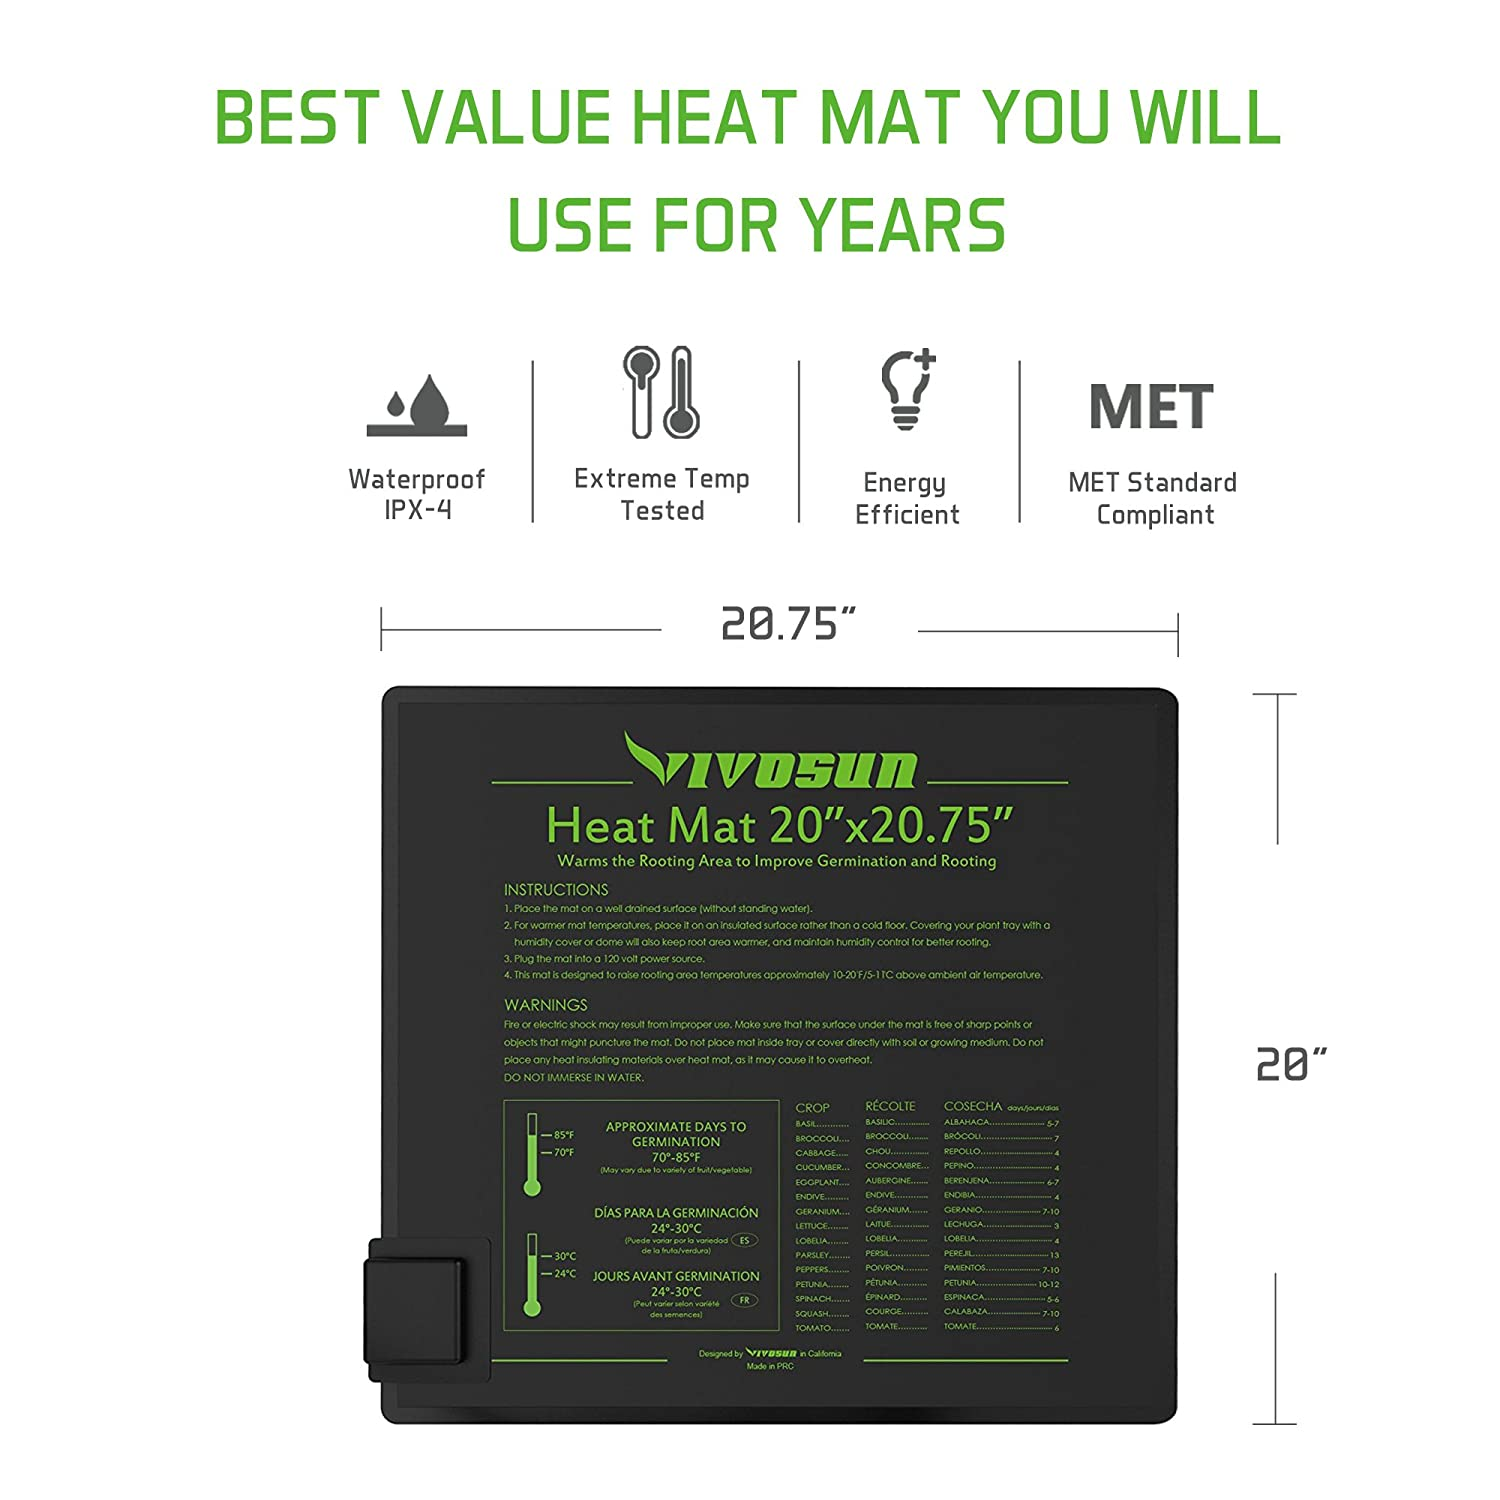 Vivosun Durable Waterproof Seedling Heat Mat Warm Wiring Tape Reptile Forums Information Hydroponic Heating Pad 20 X Met Standard Garden Outdoor